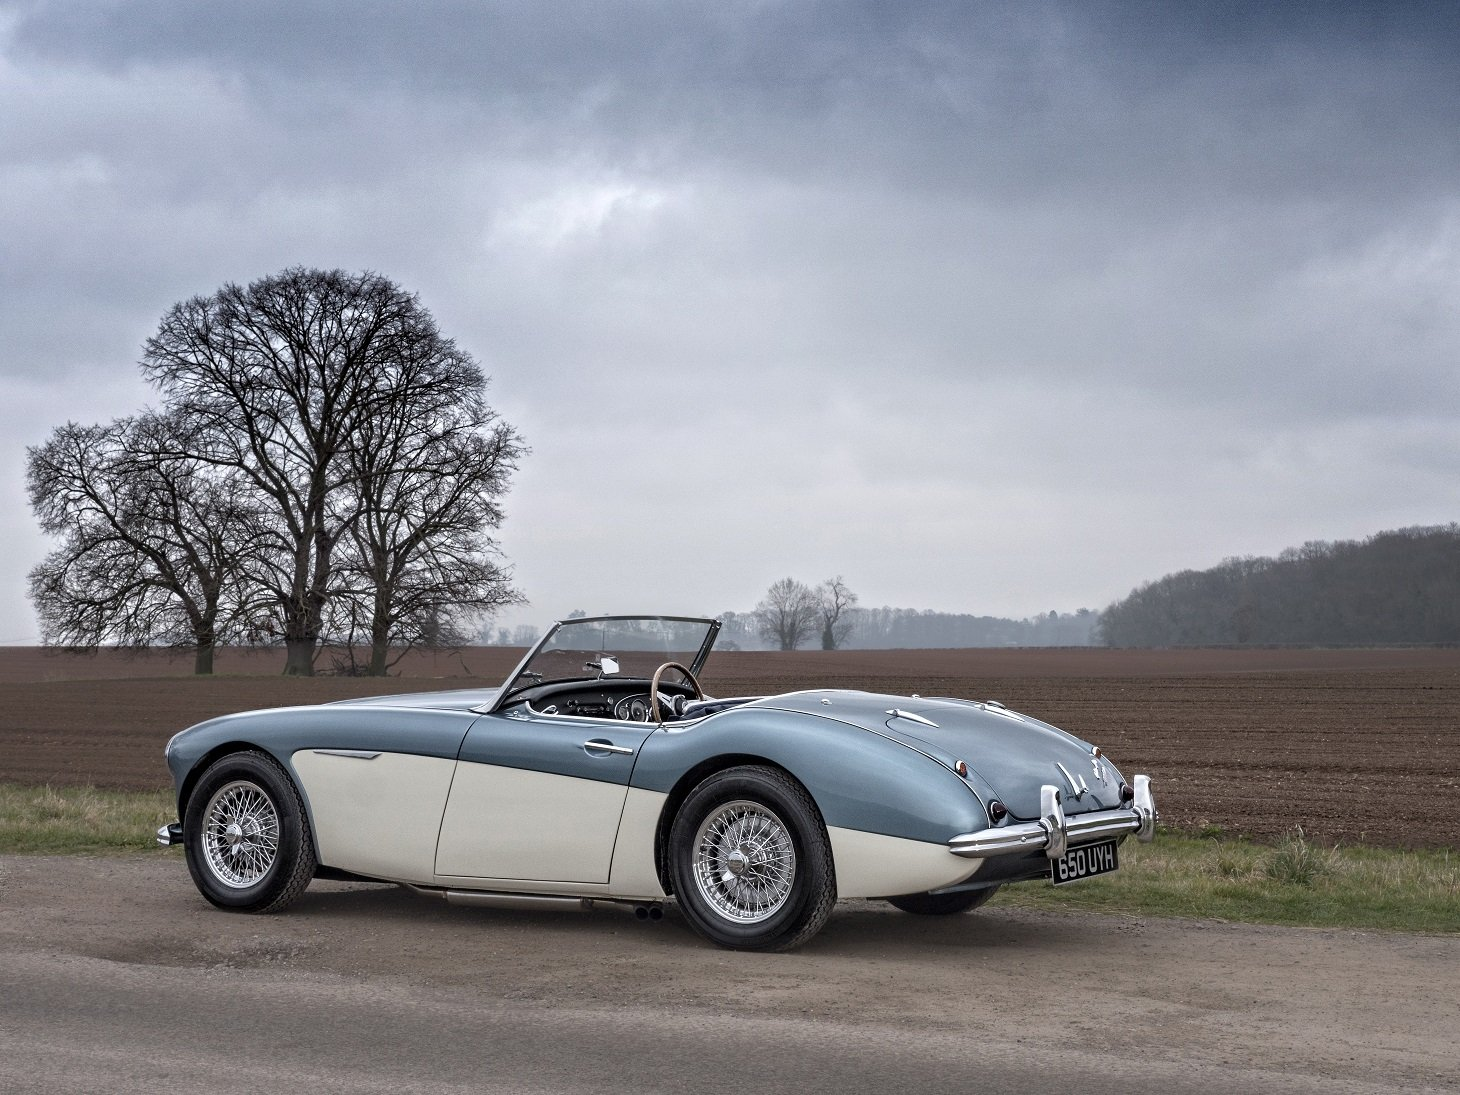 1959 Austin Healey 3000 MKI BN7 2-Seater For Sale (picture 3 of 6)